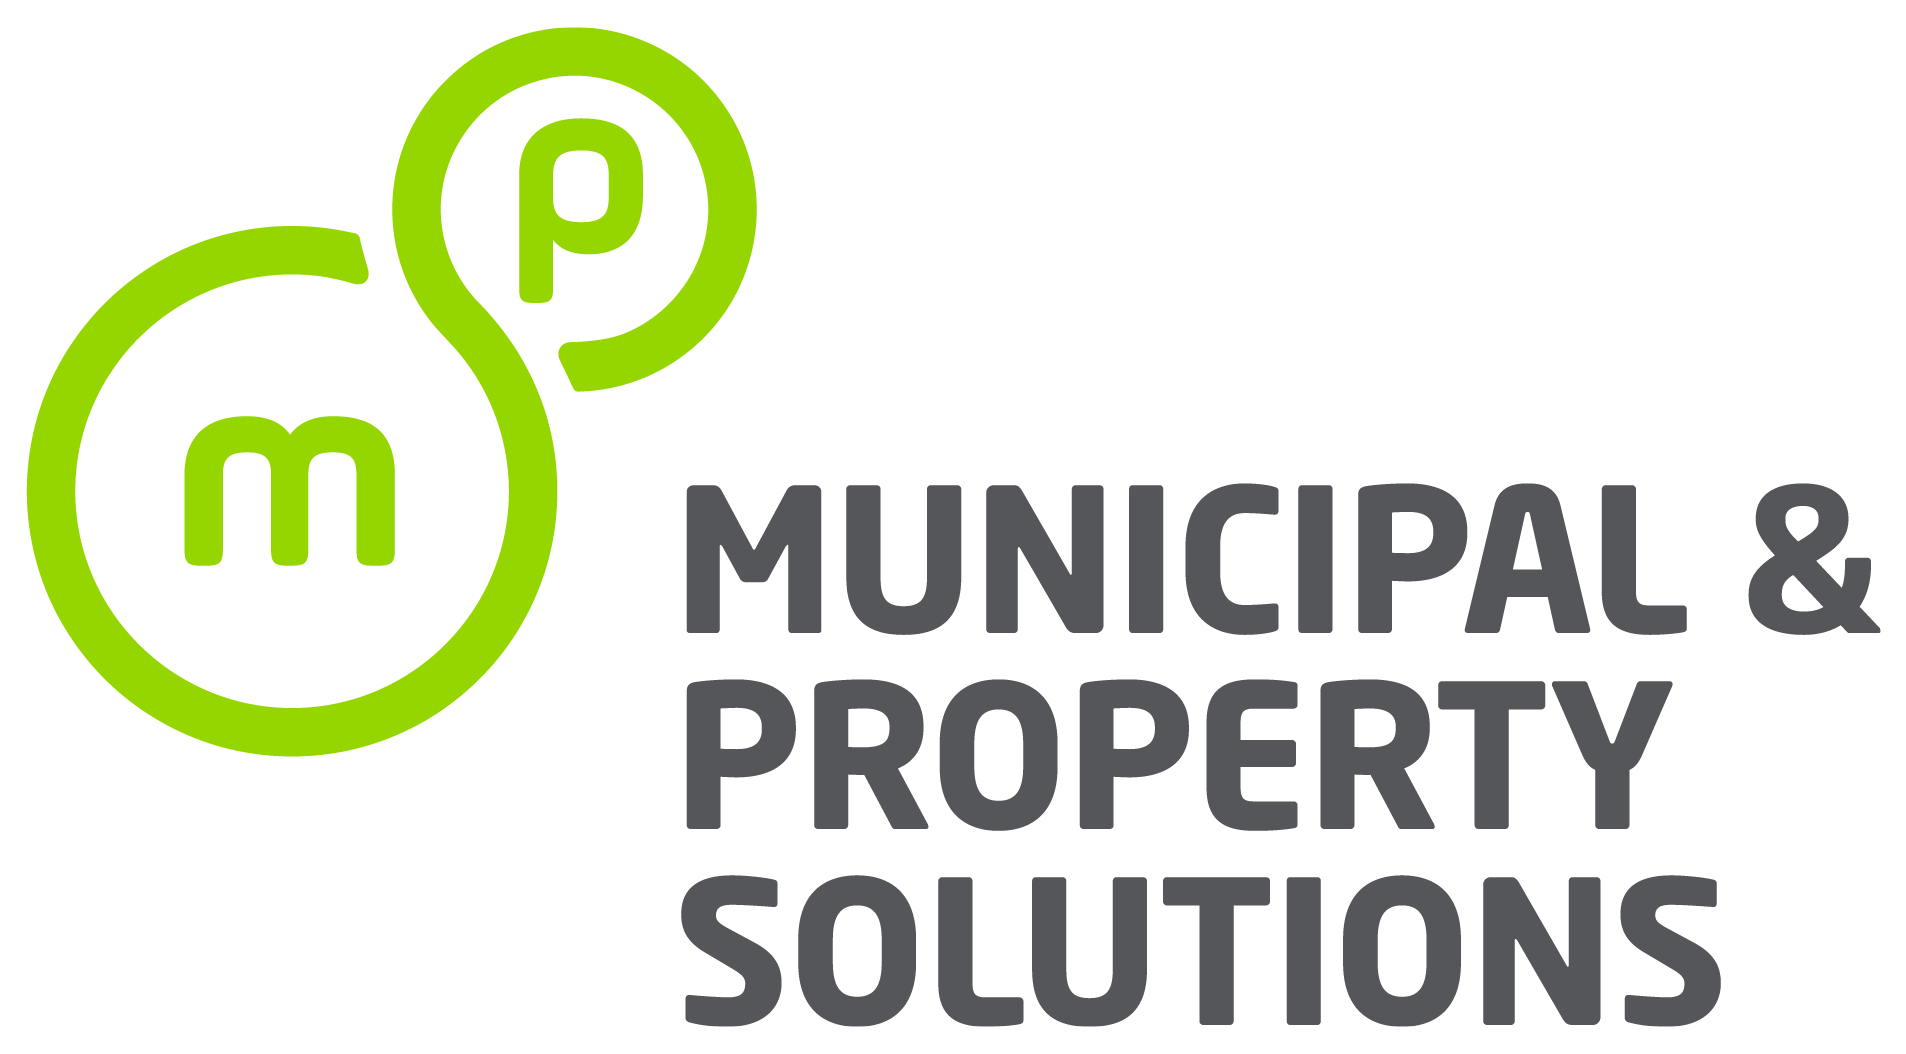 Municipal & Property Solutions